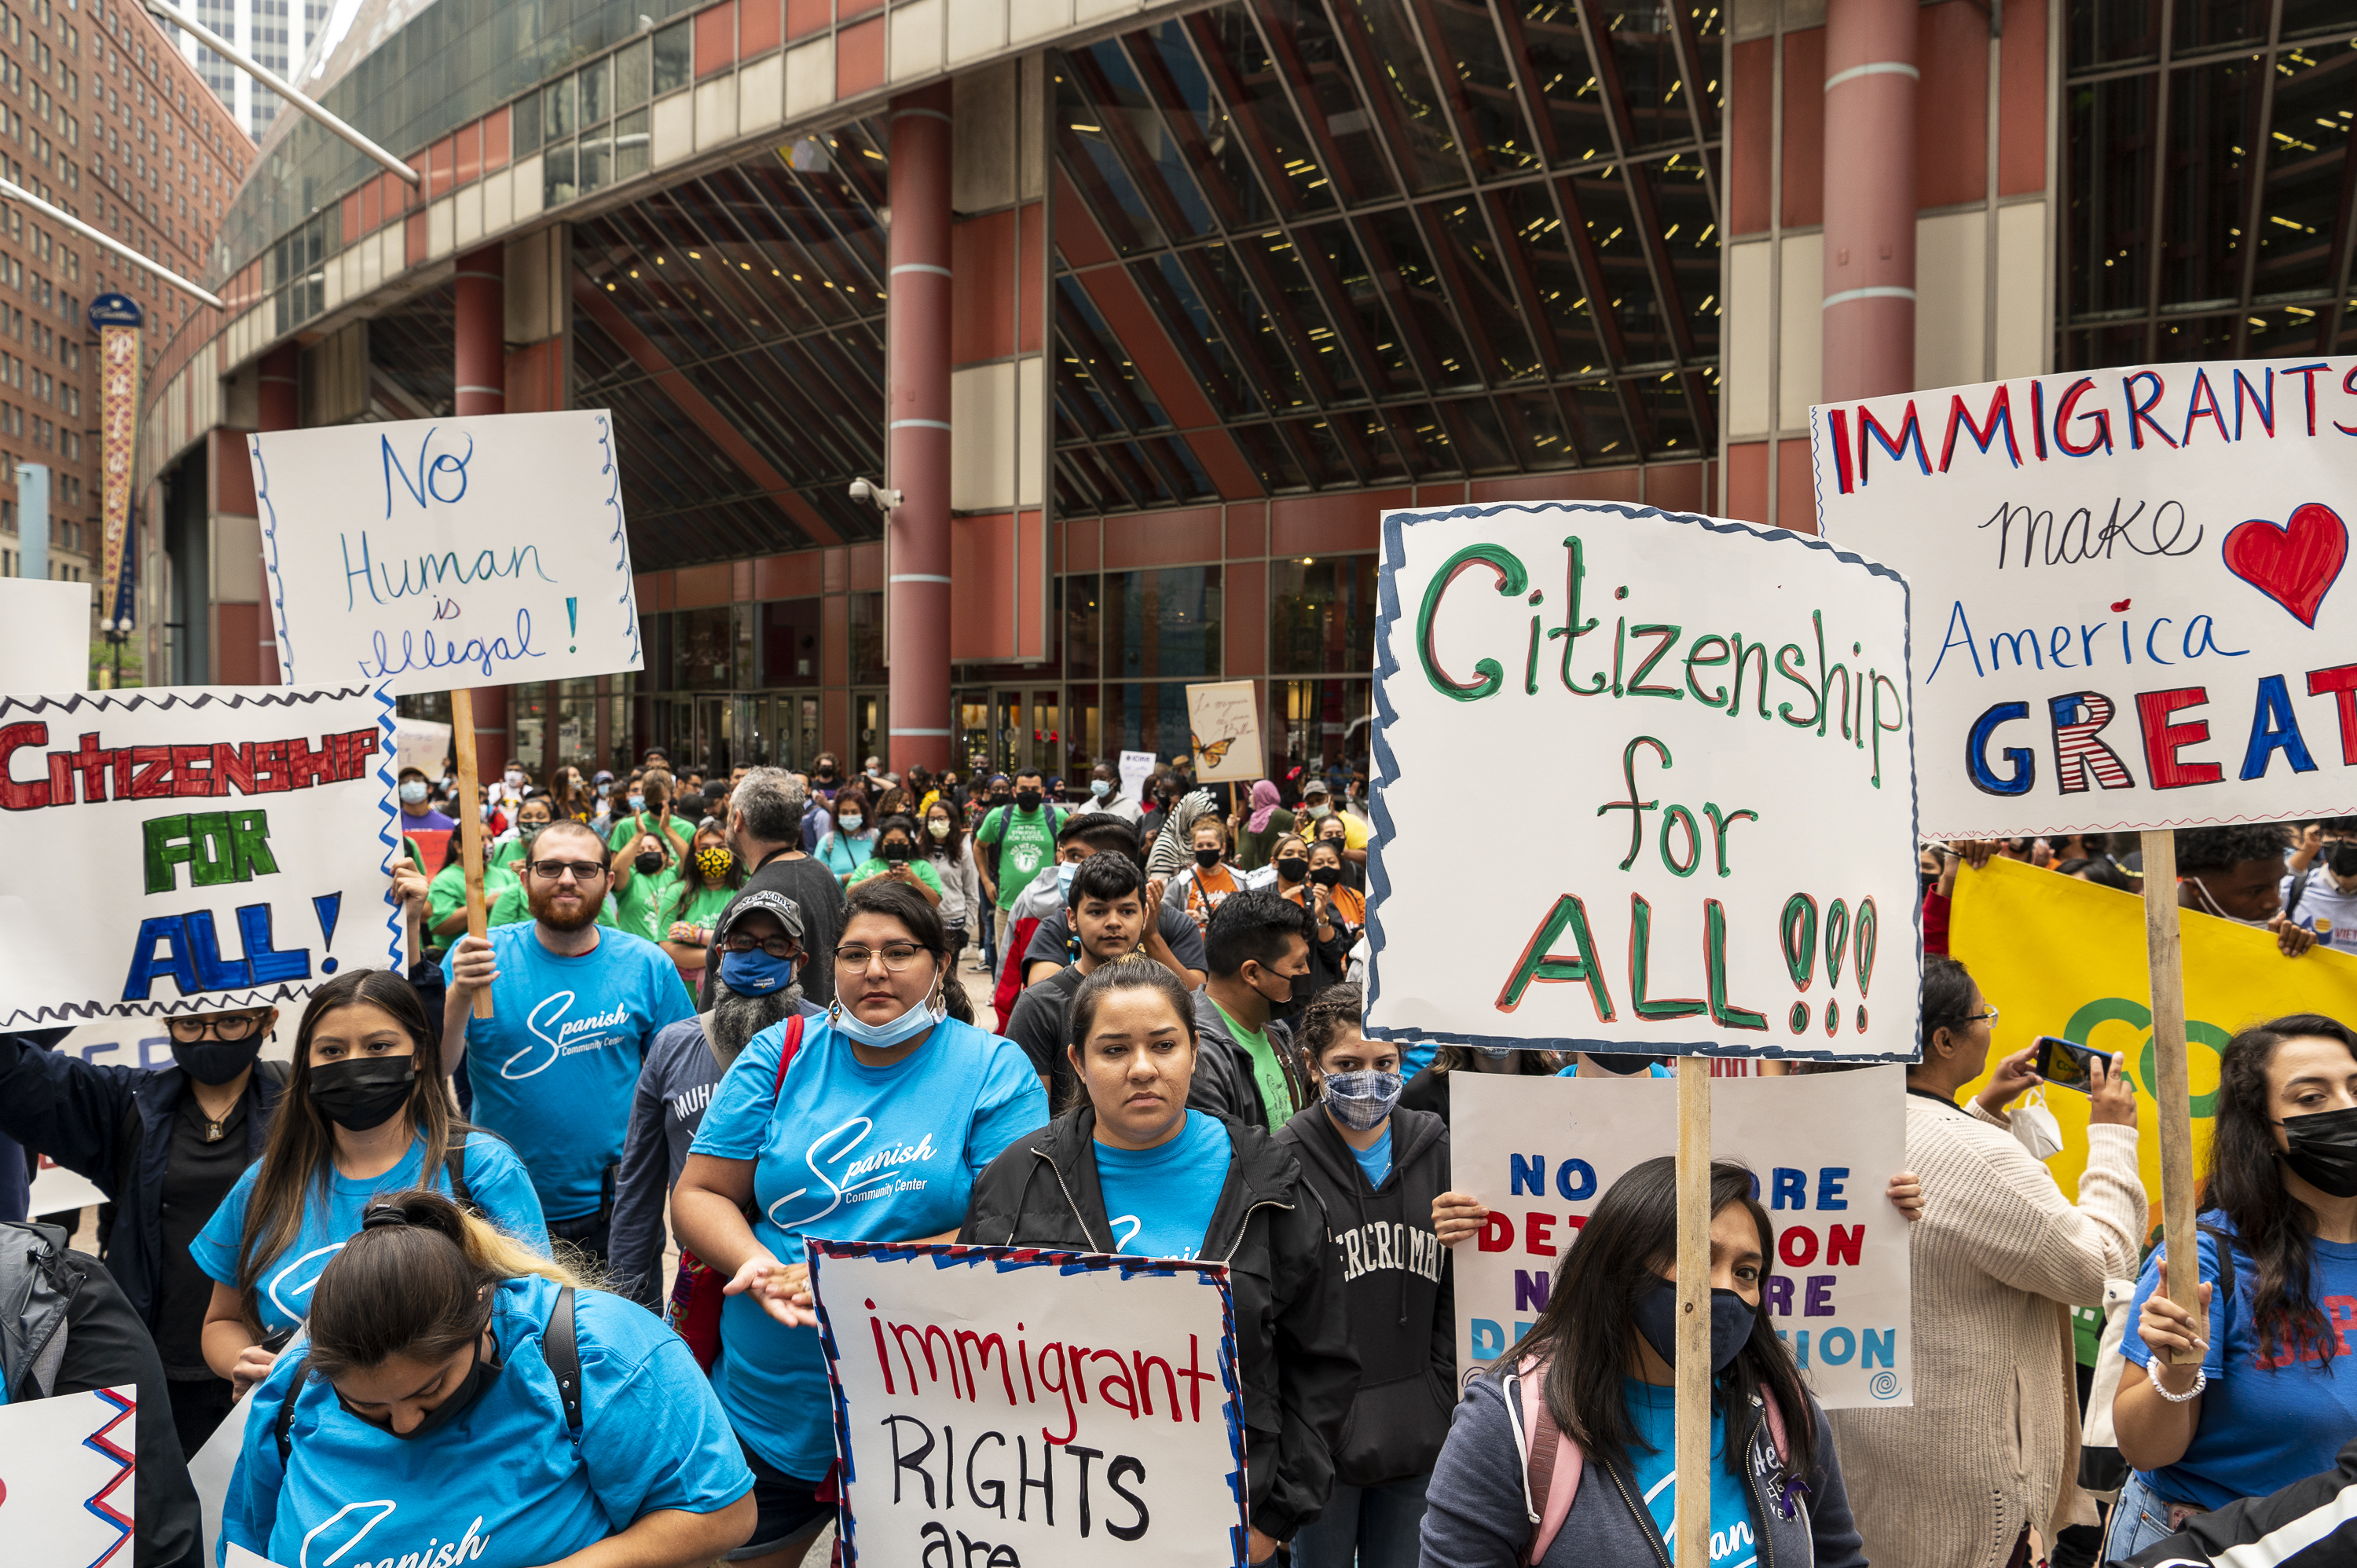 A few hundred people rally at the Thompson Center, demanding a pathway to citizenship for all and the end to deportation, Thursday, July 8, 2021.